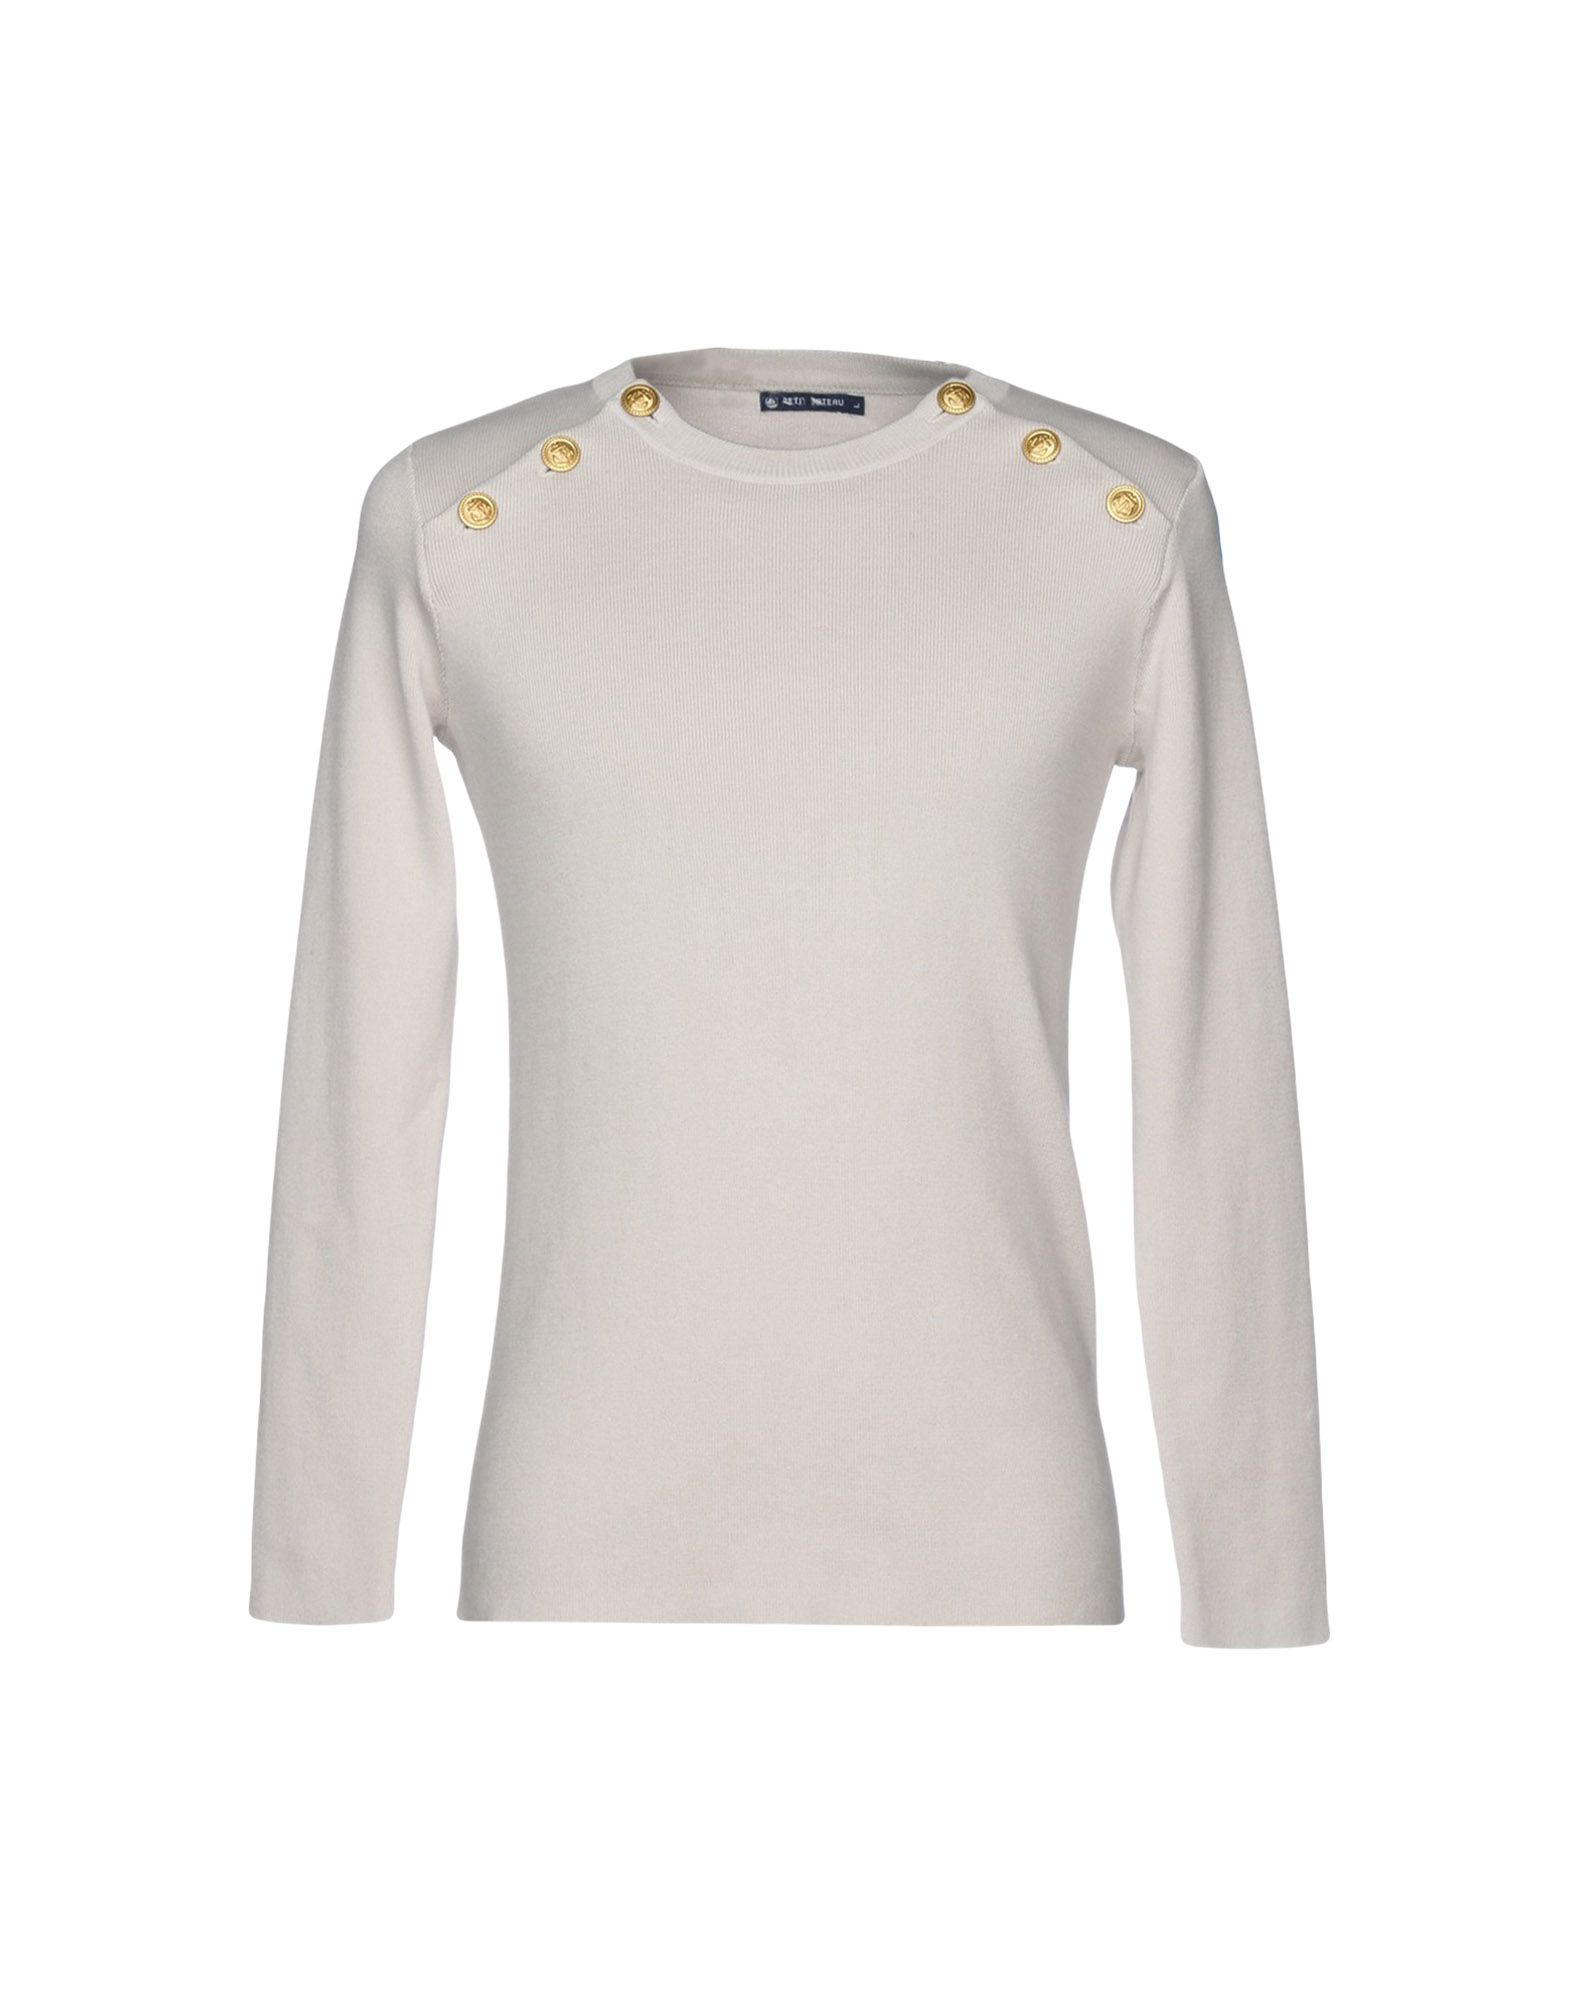 PETIT BATEAU Свитер light grey slit design bateau long sleeves top